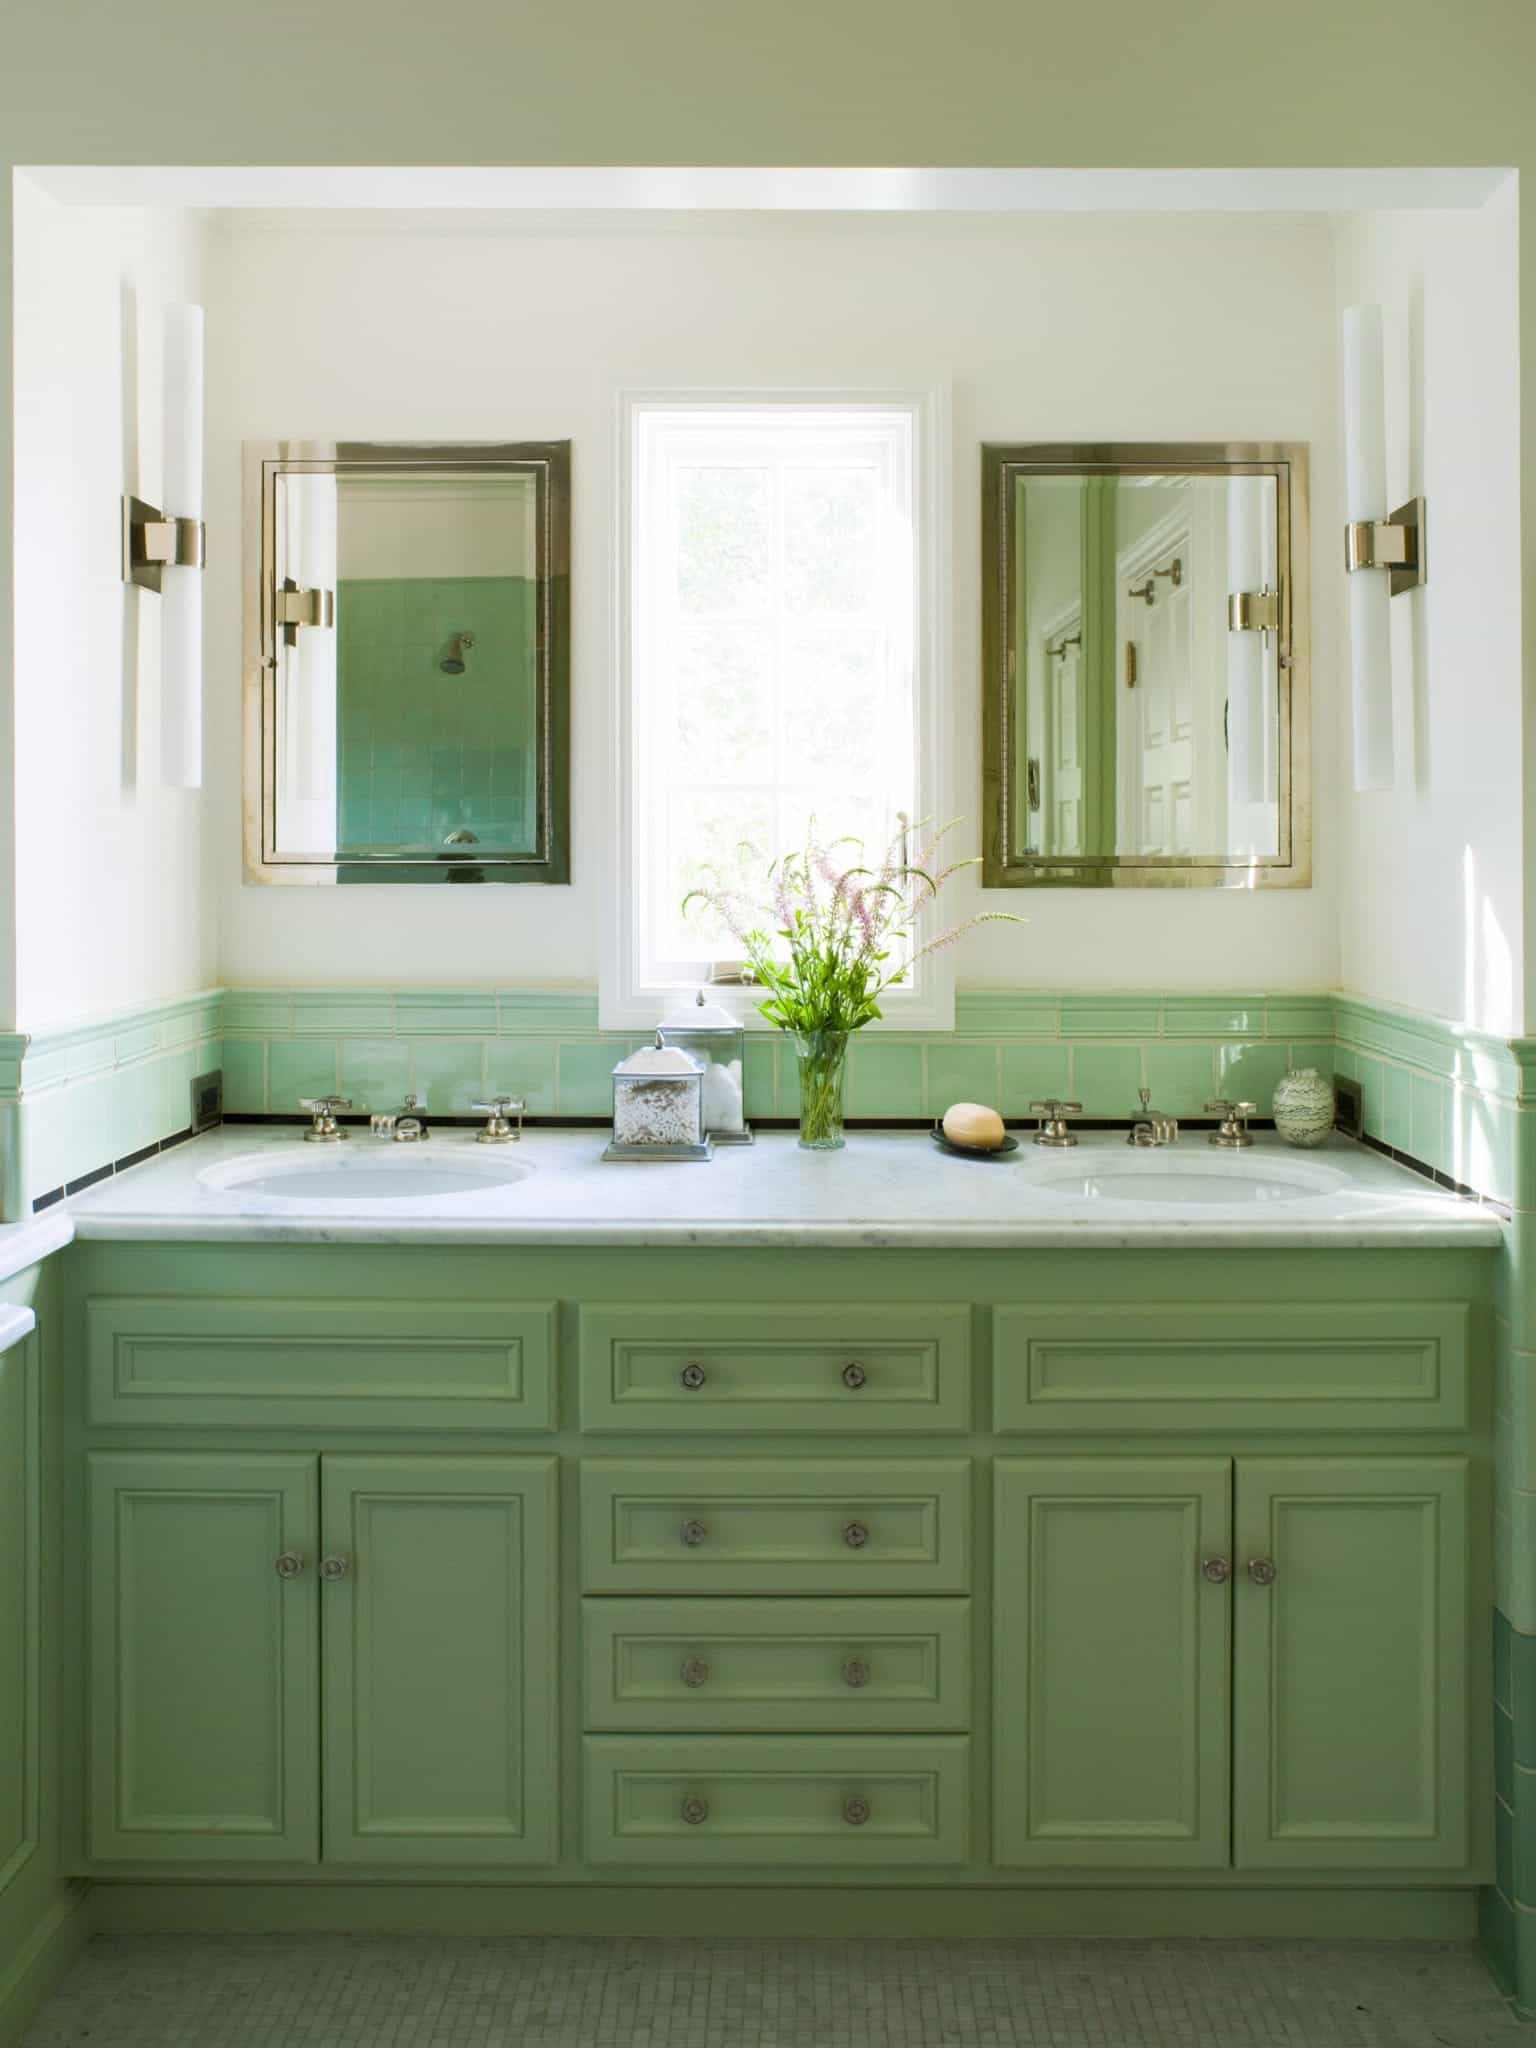 Master Bathroom With Mint Green Double Vintage Vanity (Image 7 of 12)